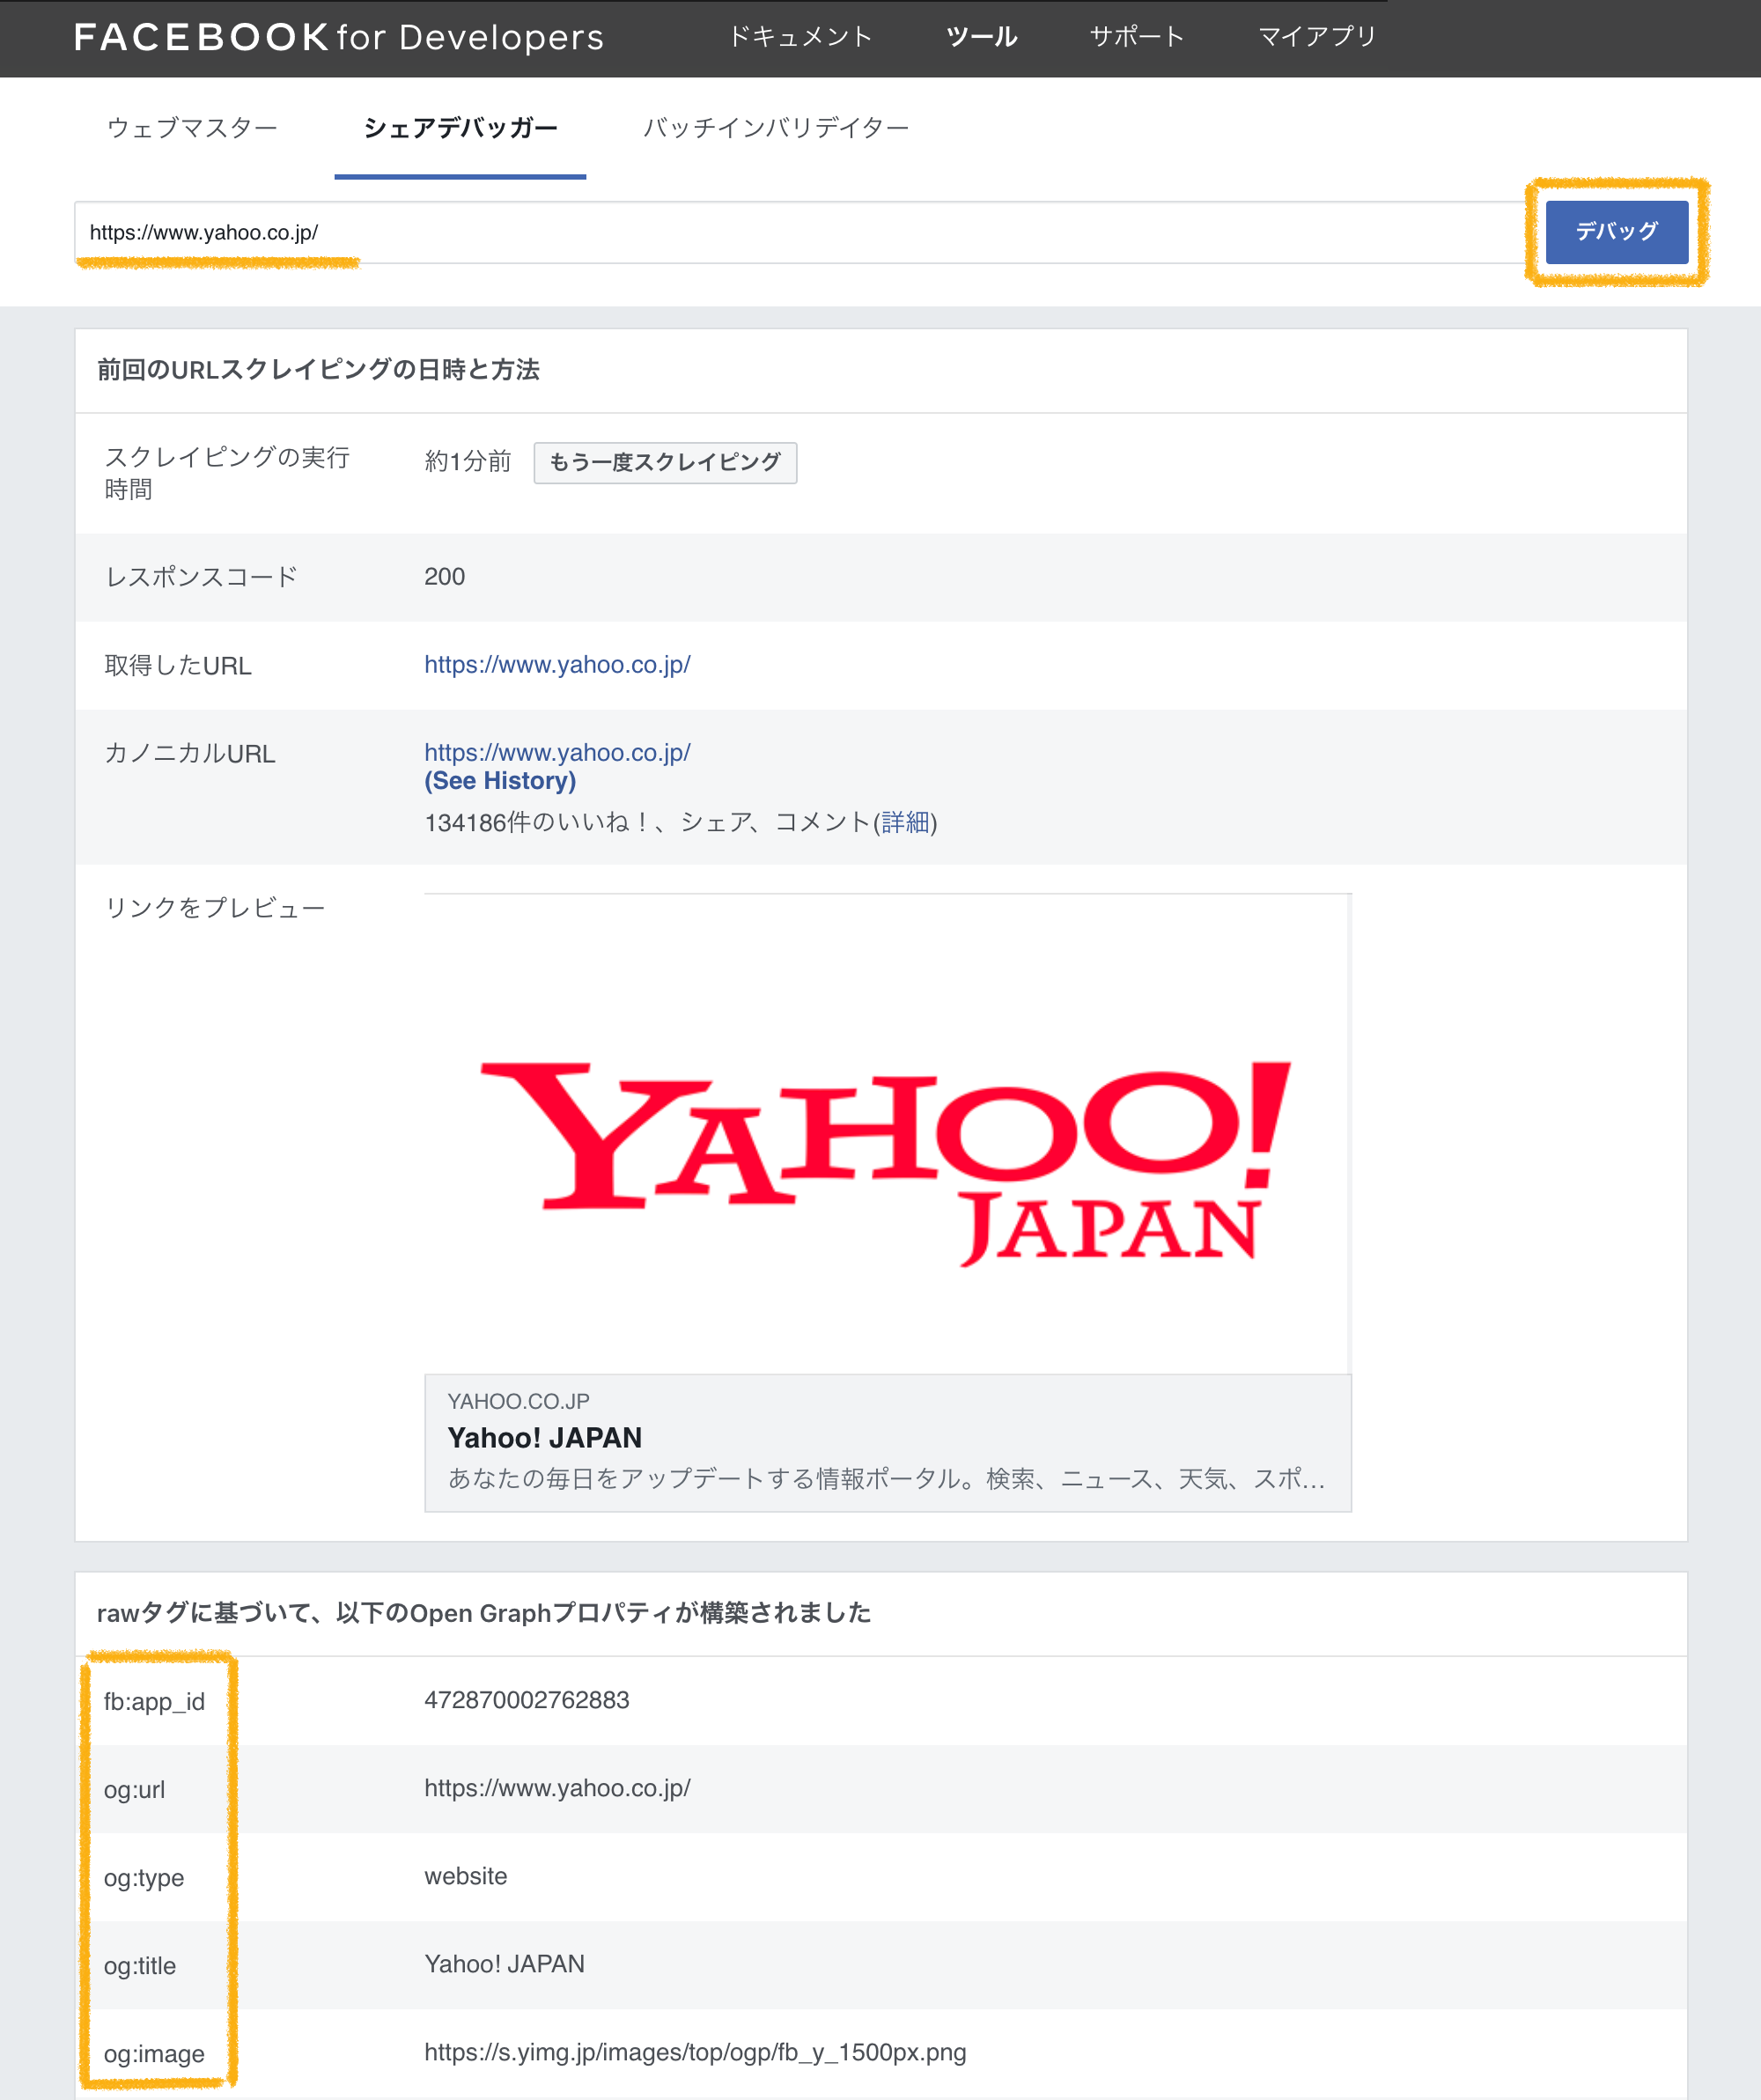 Facebook開発者用ページのシェアデバッガー